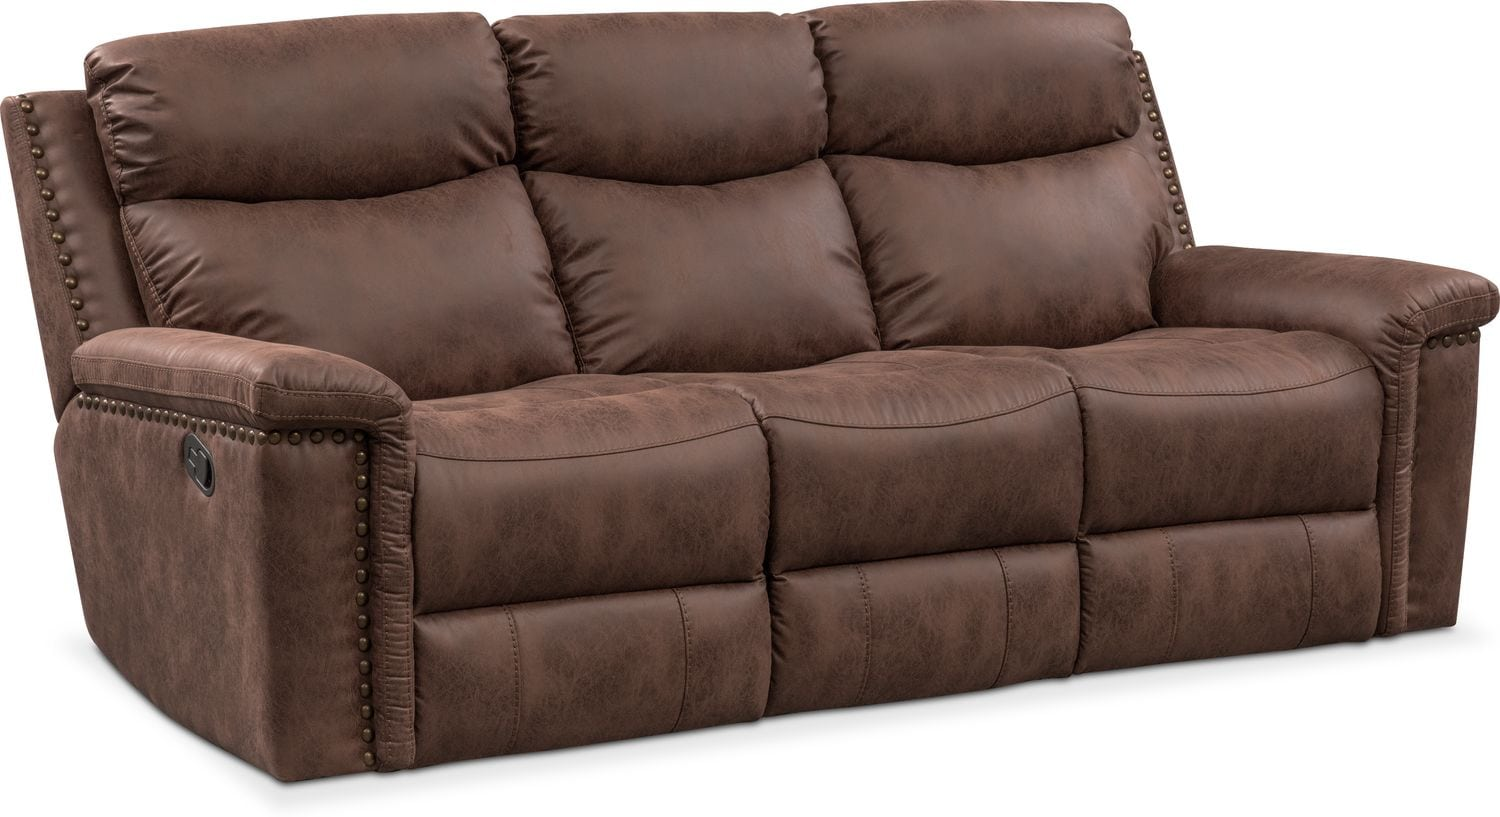 Living Room Furniture - Montana Manual Reclining Sofa